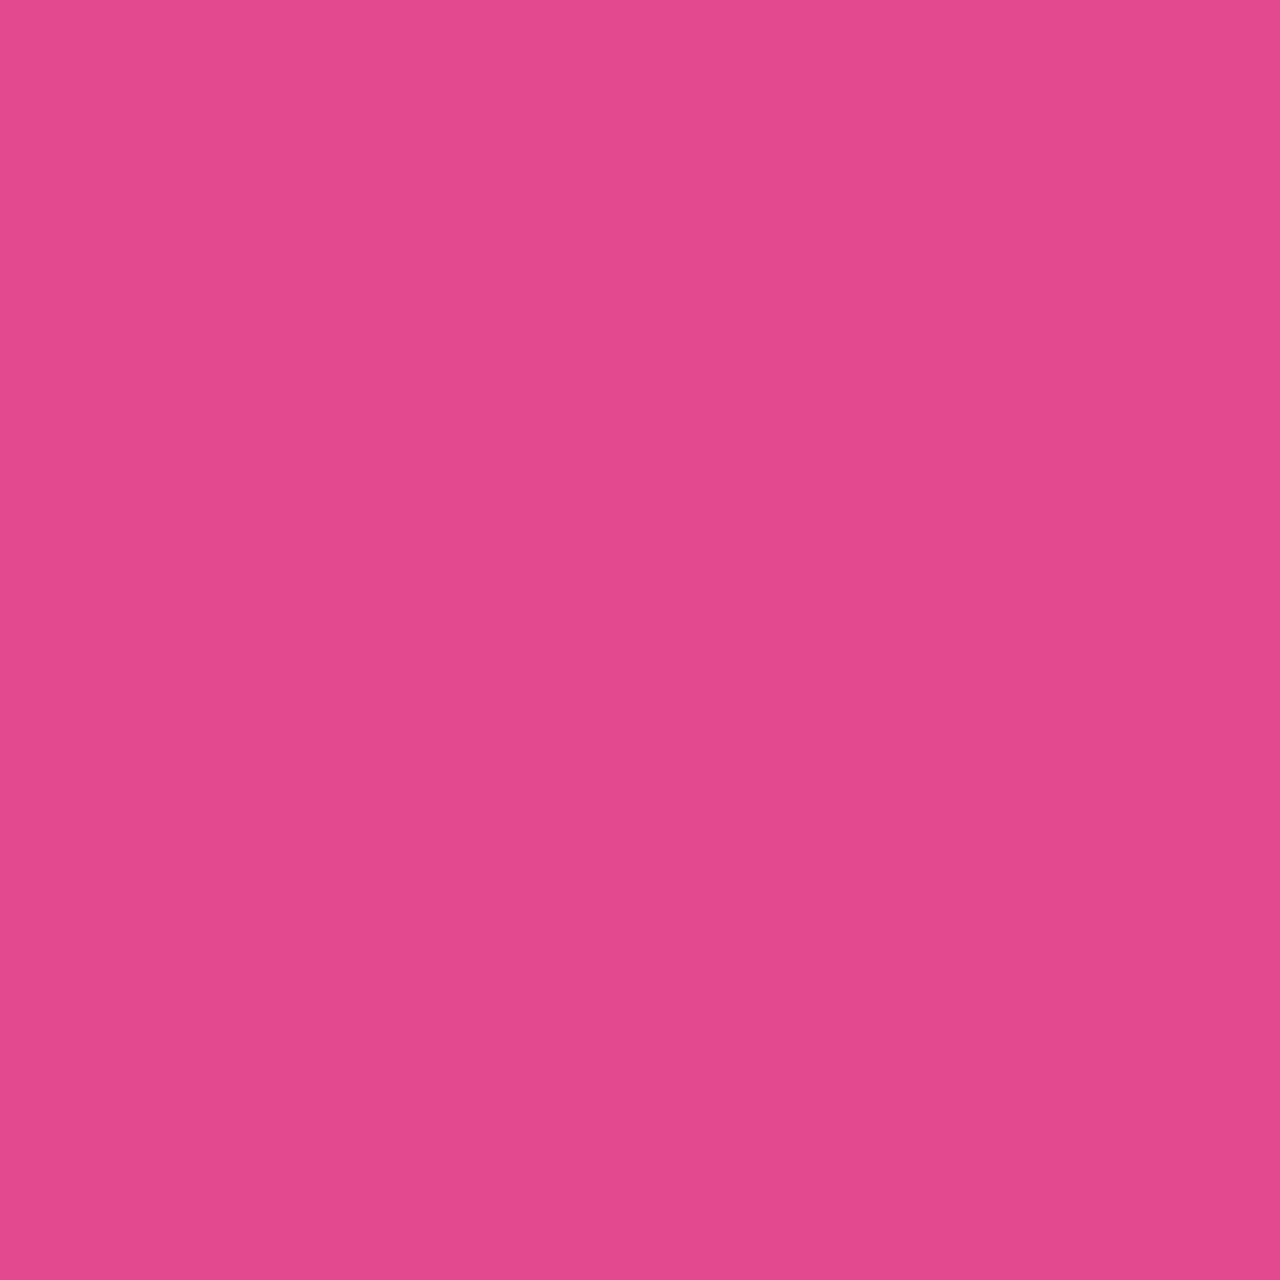 #0343 Rosco Gels Roscolux Neon Pink, 20x24""